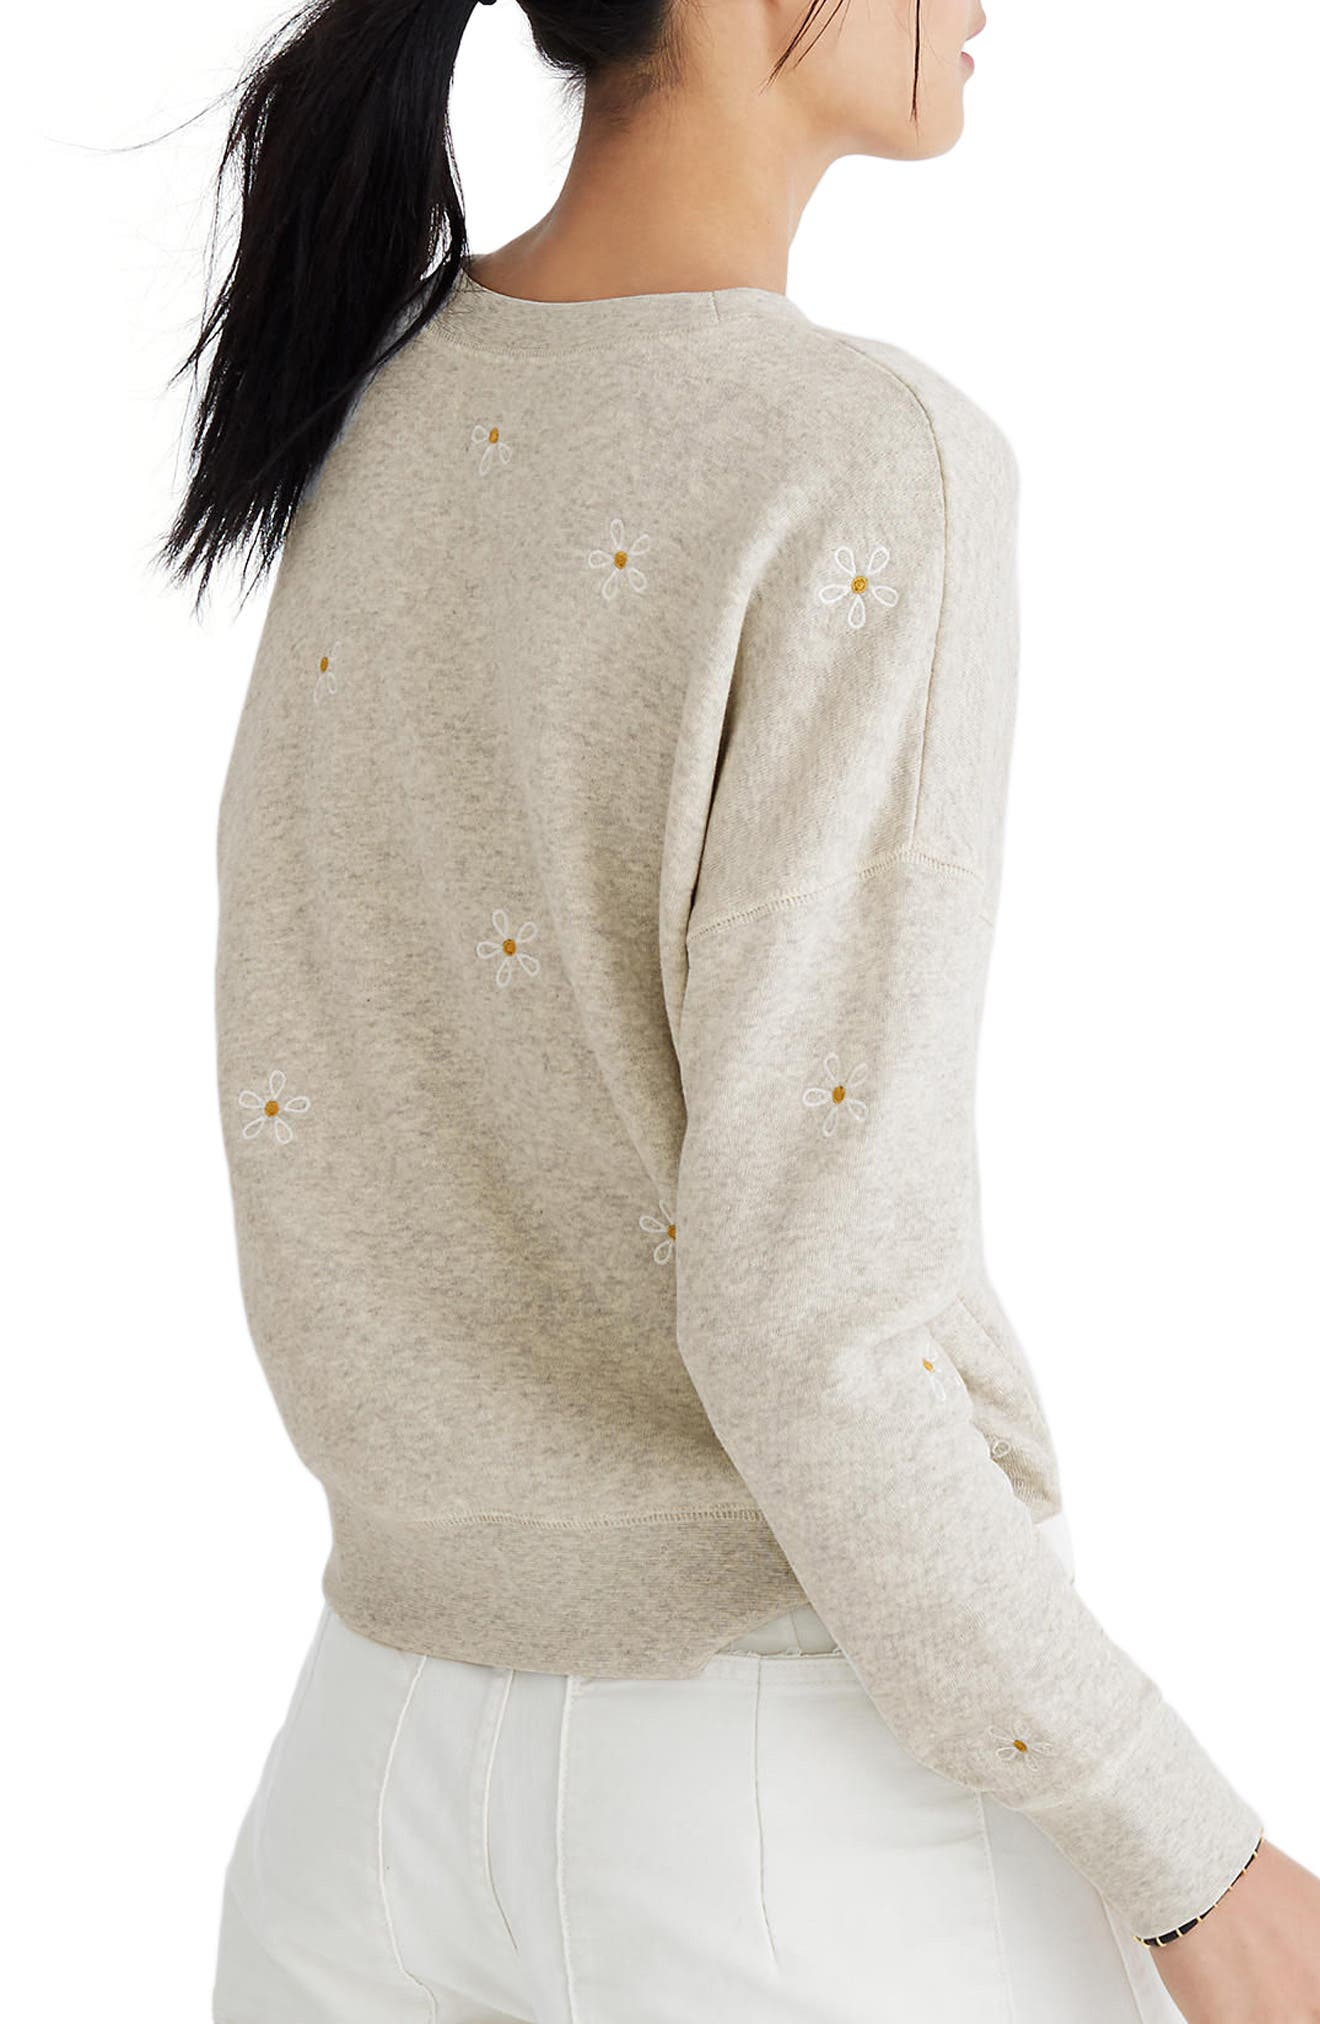 Daisy Embroidered Sweatshirt,                             Alternate thumbnail 2, color,                             Hthr Pearl